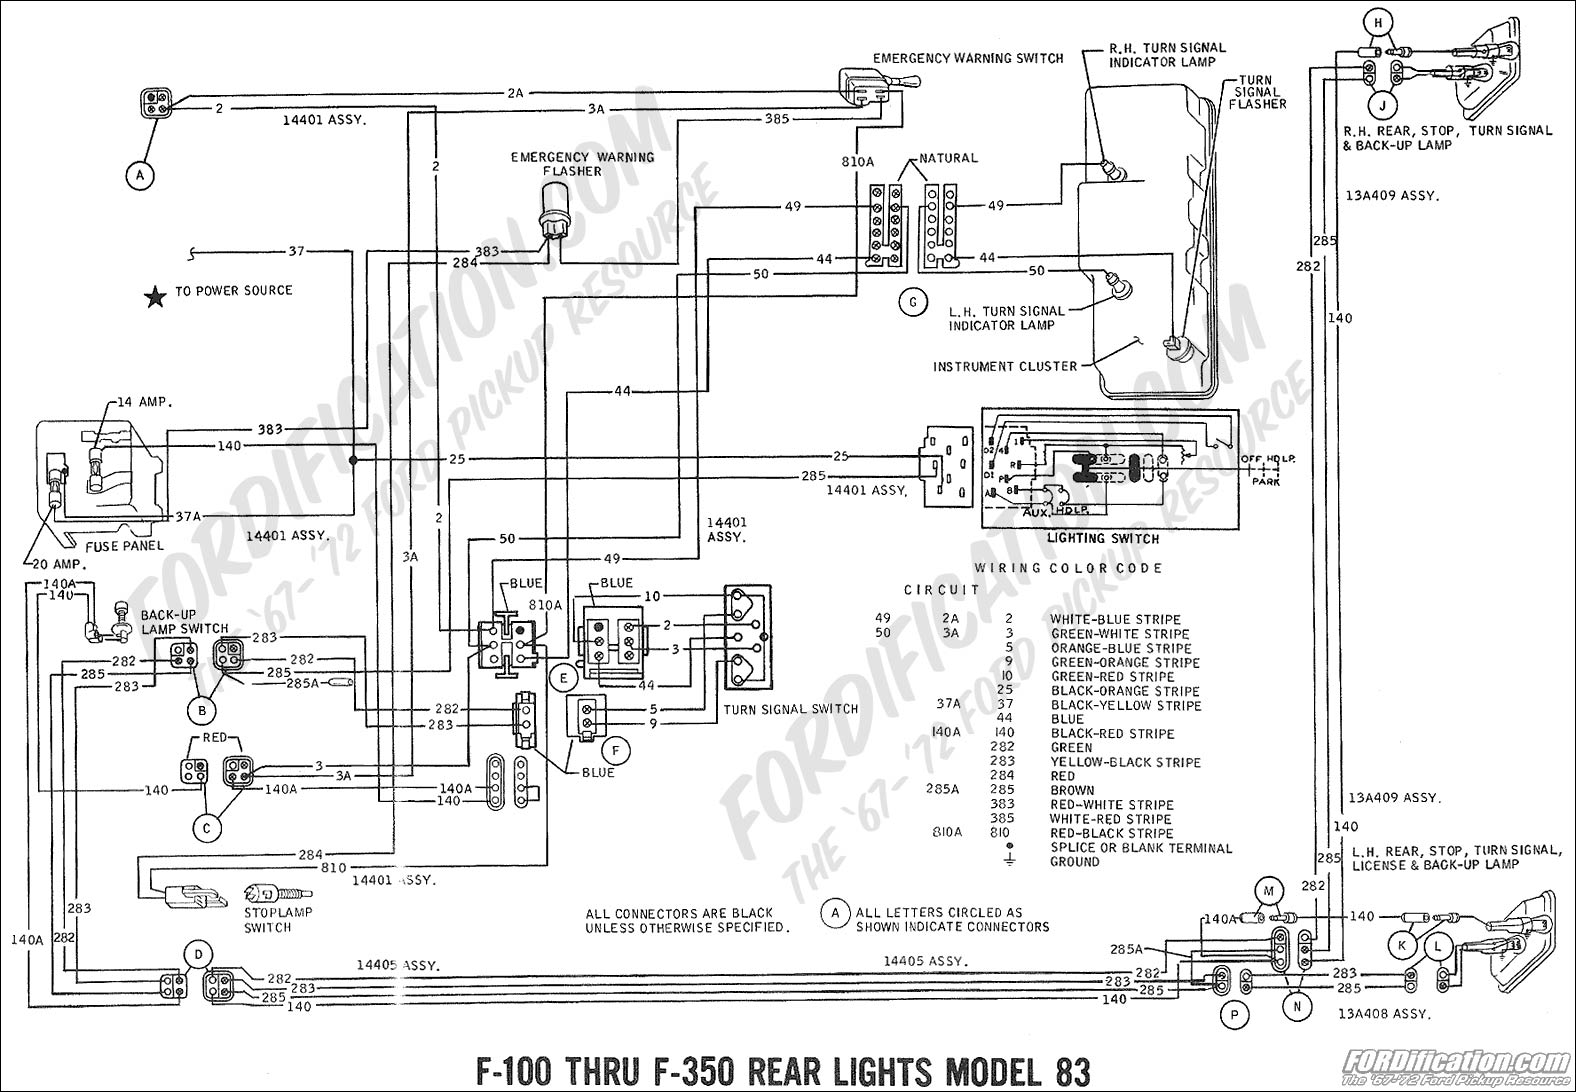 wiring_69rearlights mdl83 2 1969 ford f100 wiring diagram 79 ford wiring diagram \u2022 wiring 1977 ford f100 wiring diagram at n-0.co